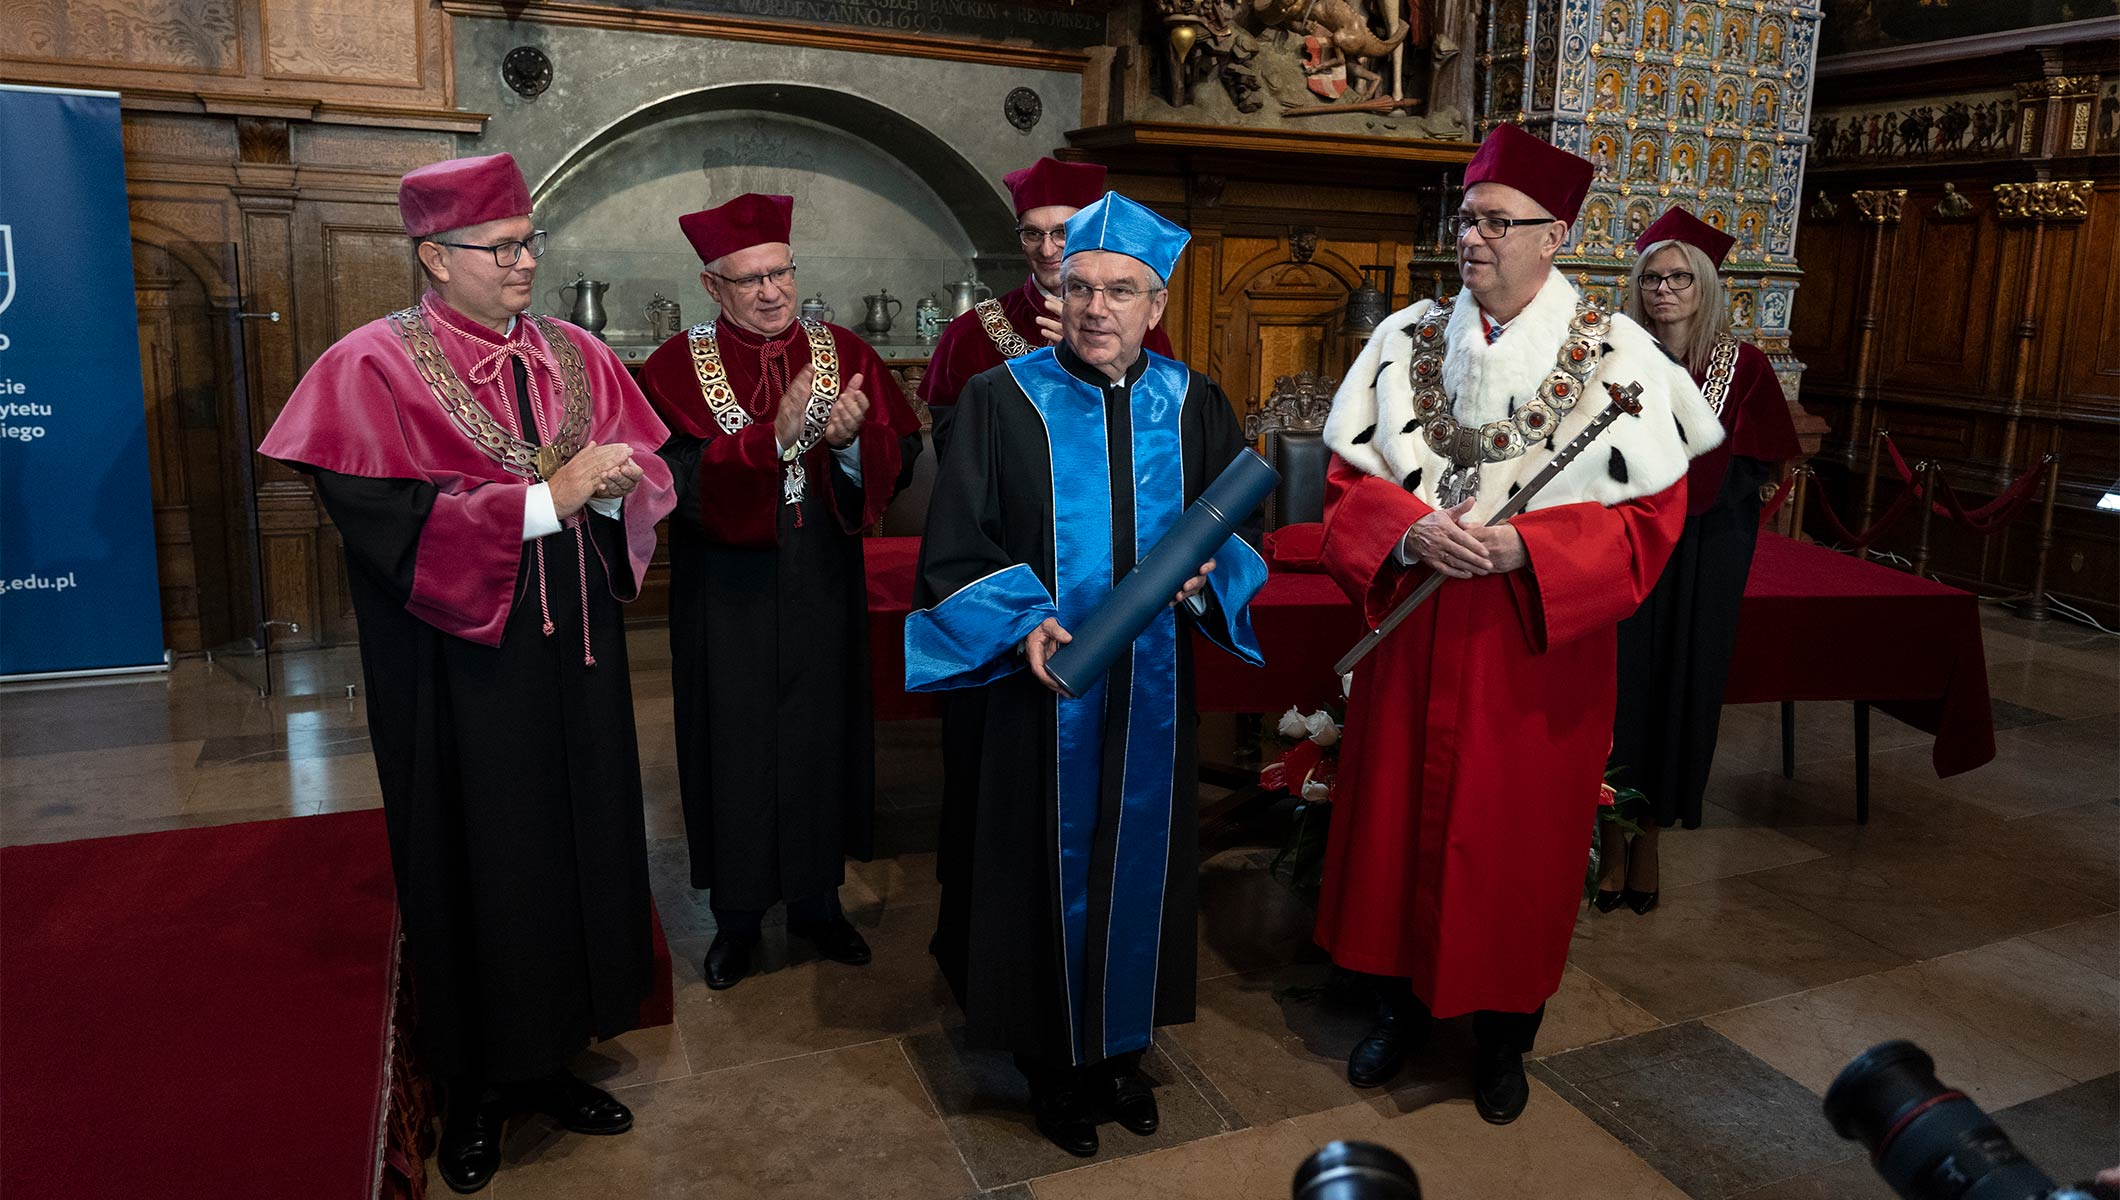 President Bach awarded honorary doctorate at the University of Gdansk